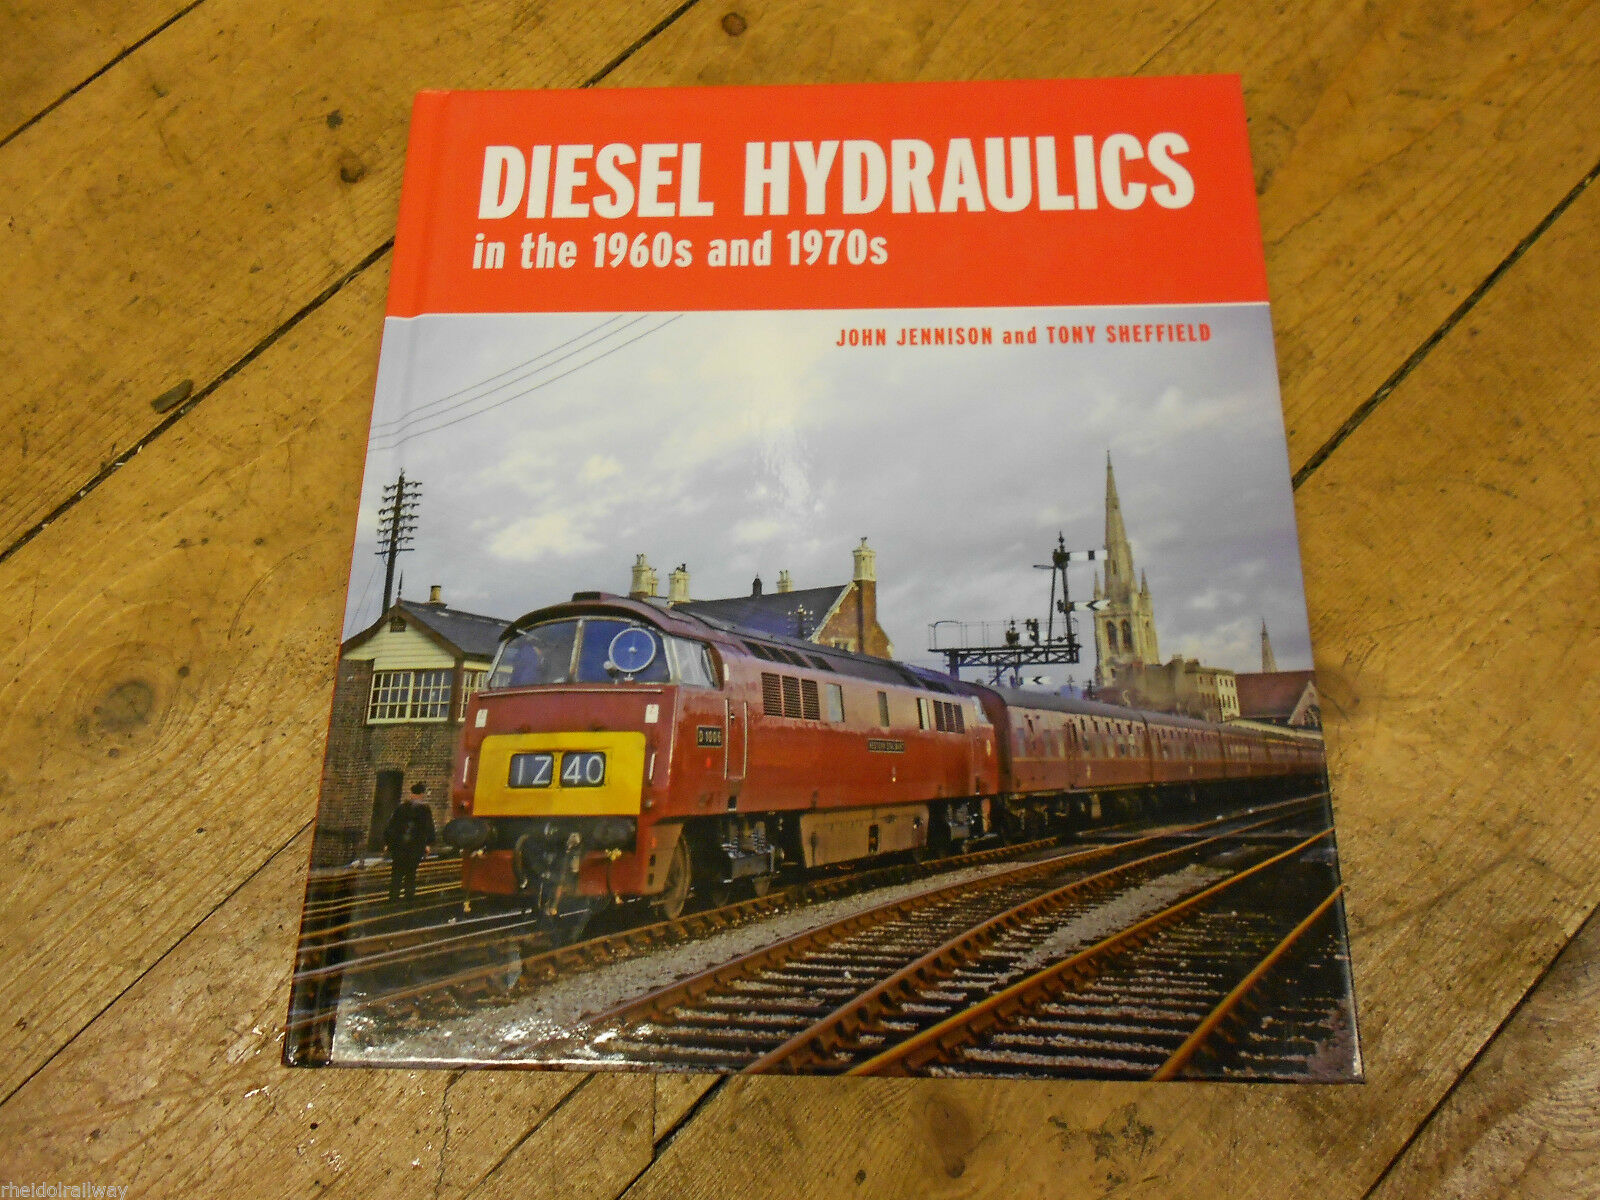 Diesel Hydraulics in the 1960s and 1970s Hymek Western Warship NBL - The Vale of Rheidol Railway